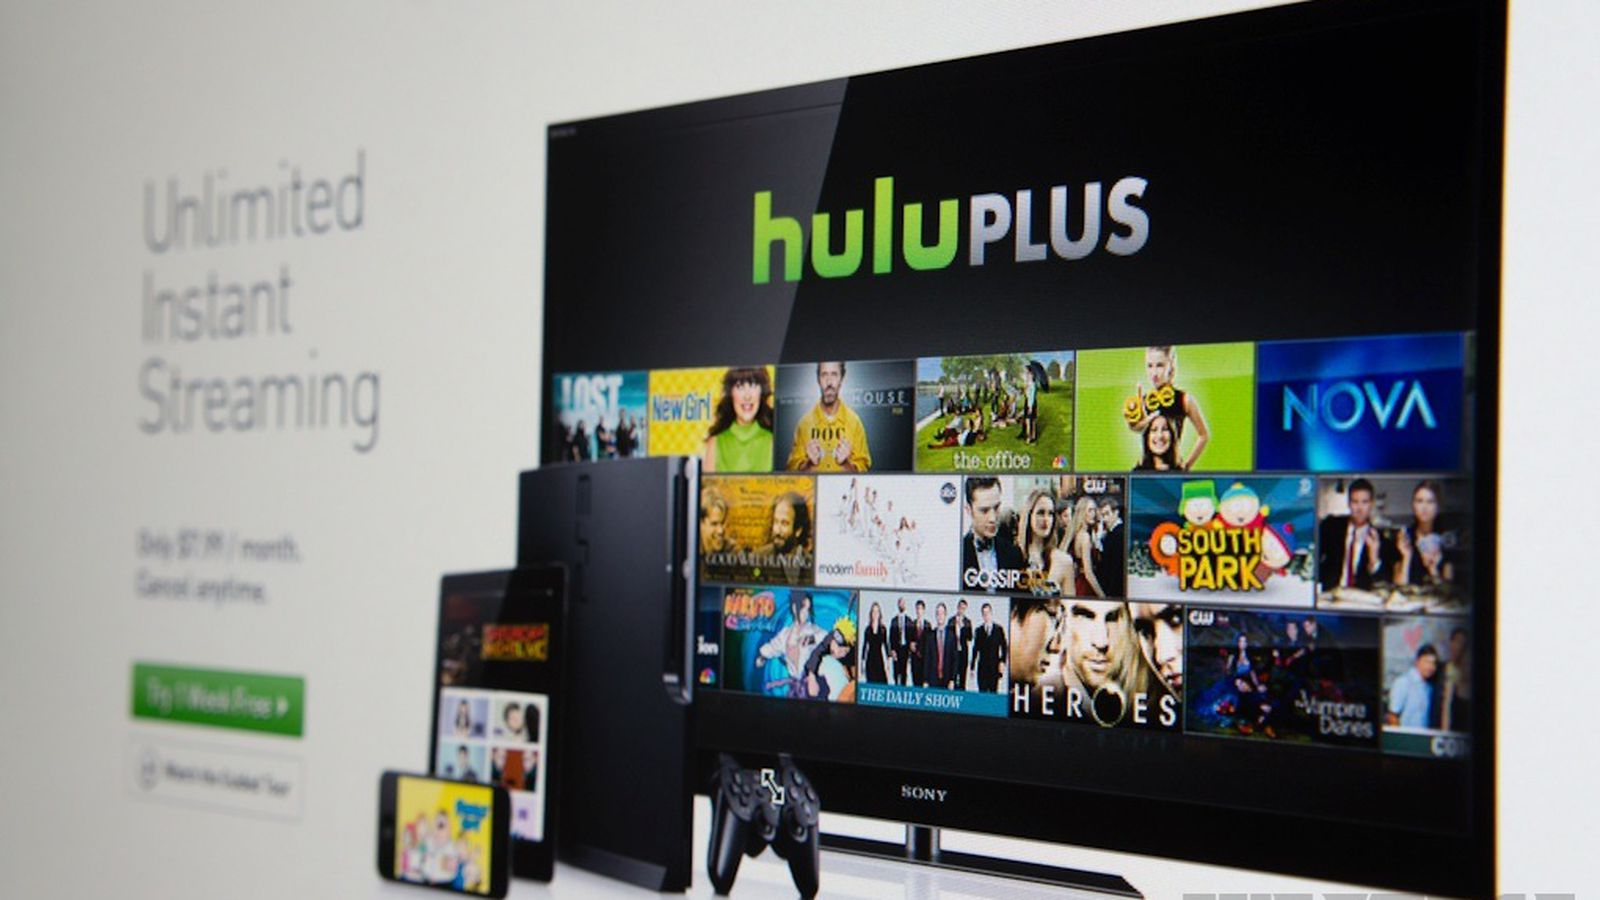 Watch Hulu Plus worldwide with an Apple TV and US iTunes ...